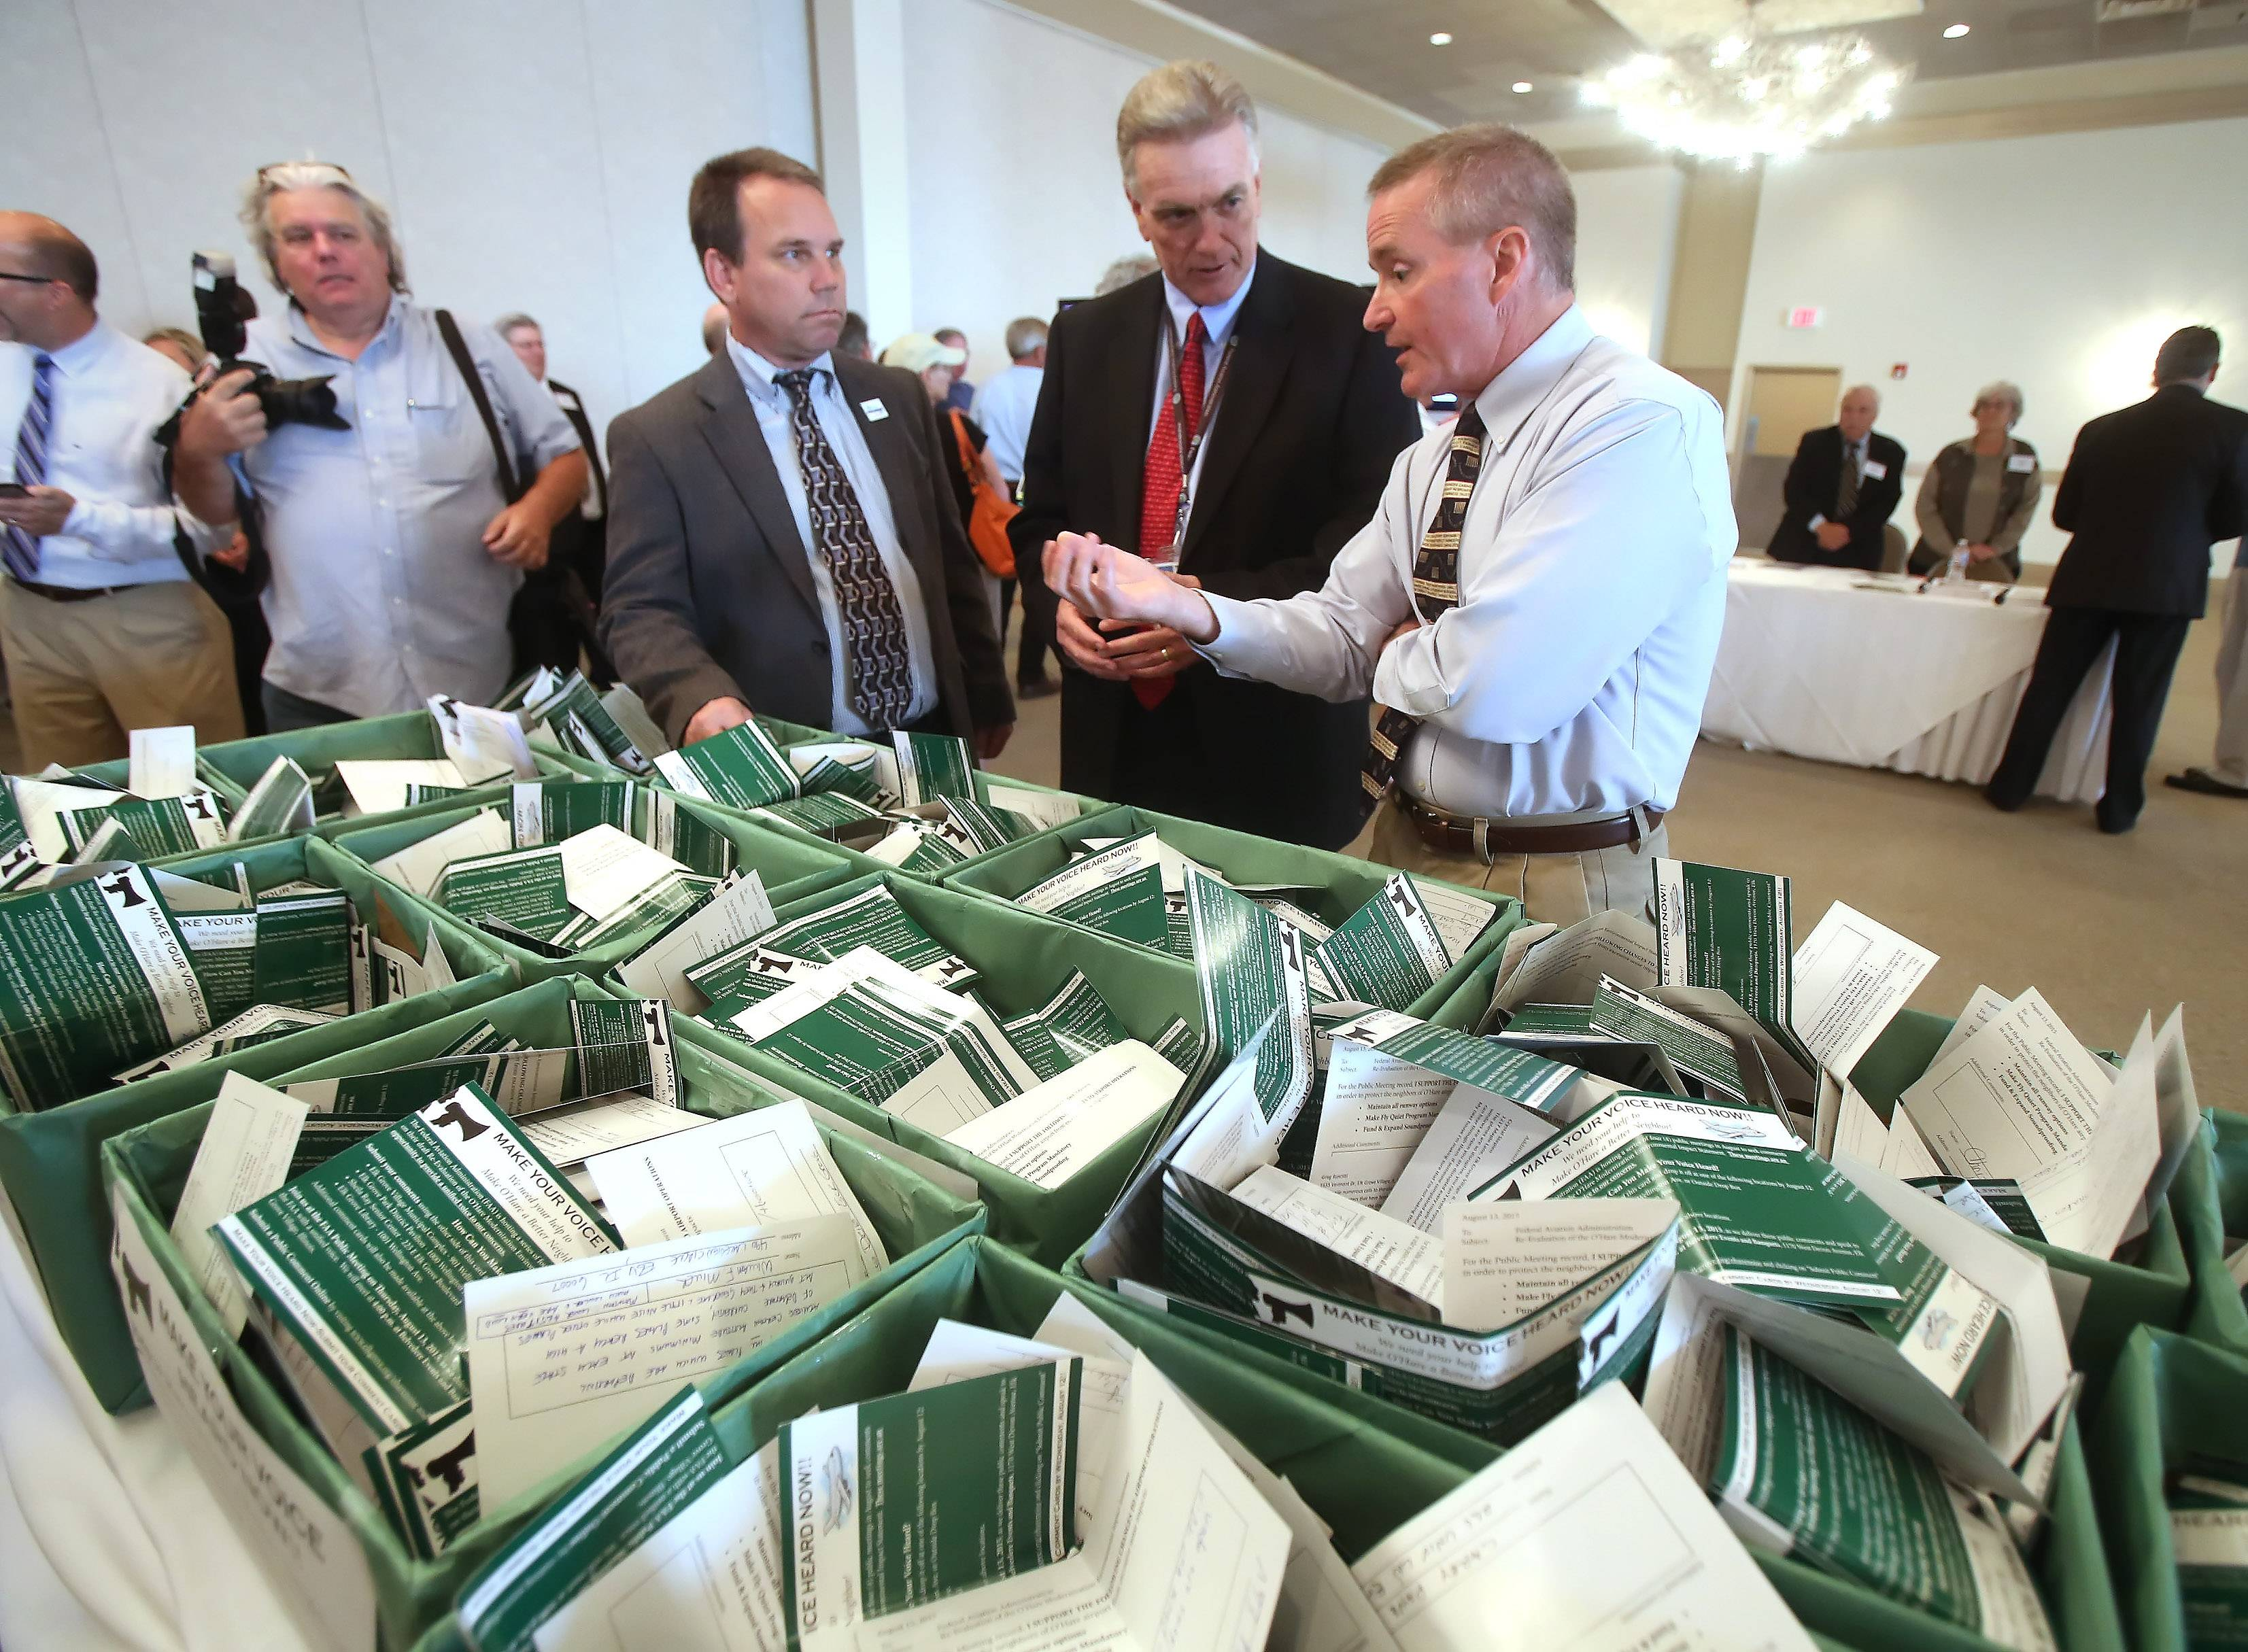 Elk Grove, Itasca mayors bring 2,000 comment cards to O'Hare noise hearing